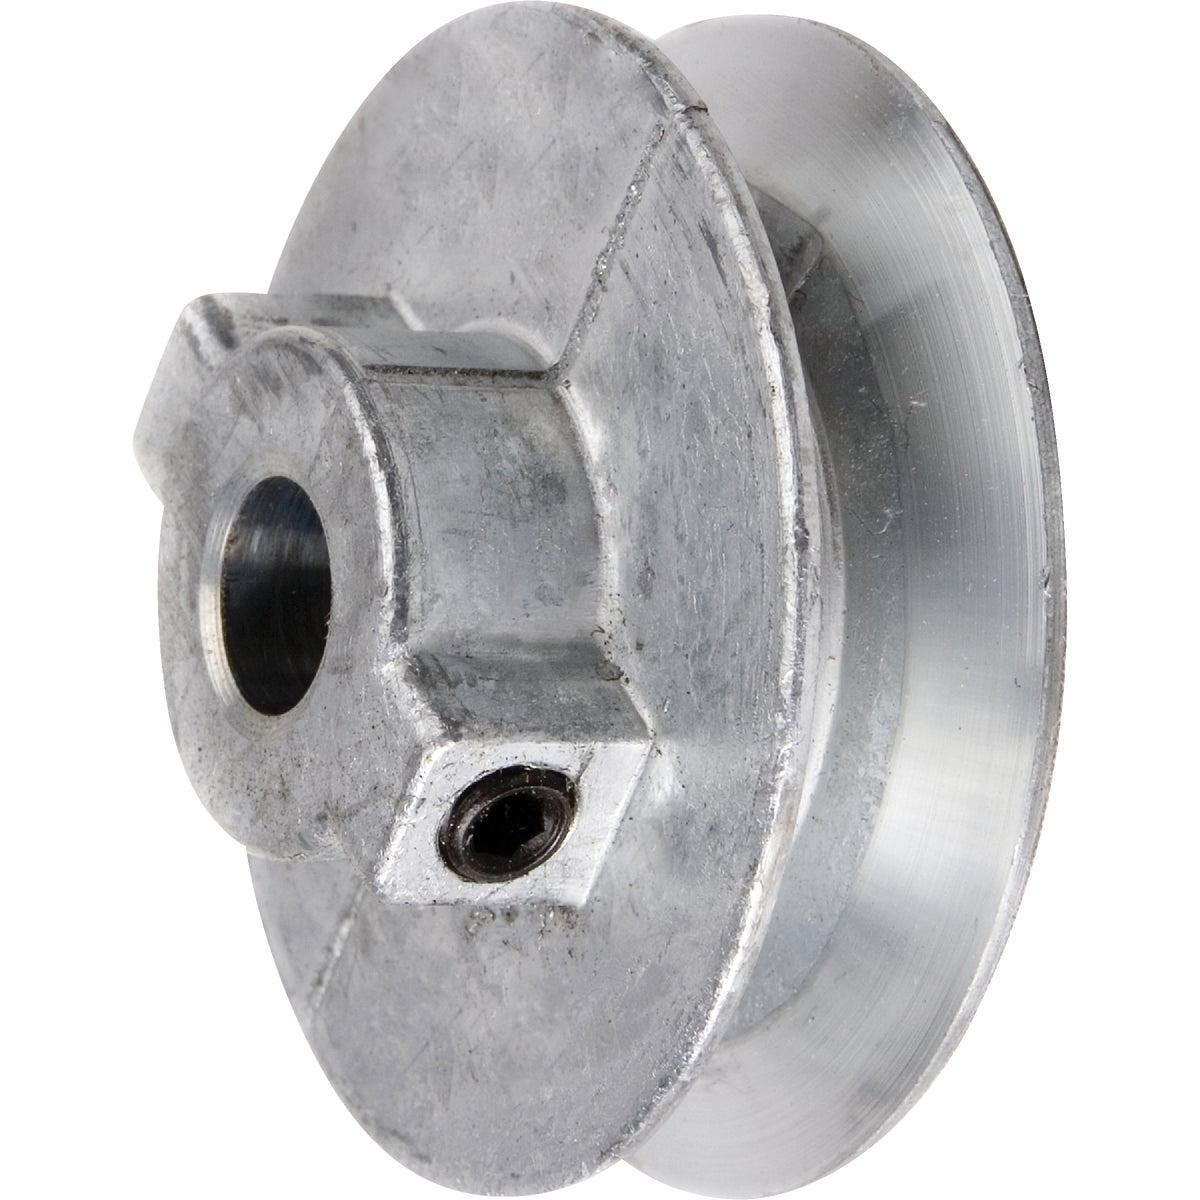 4X3/4 PULLEY - 400A7 by Chicago Die Casting